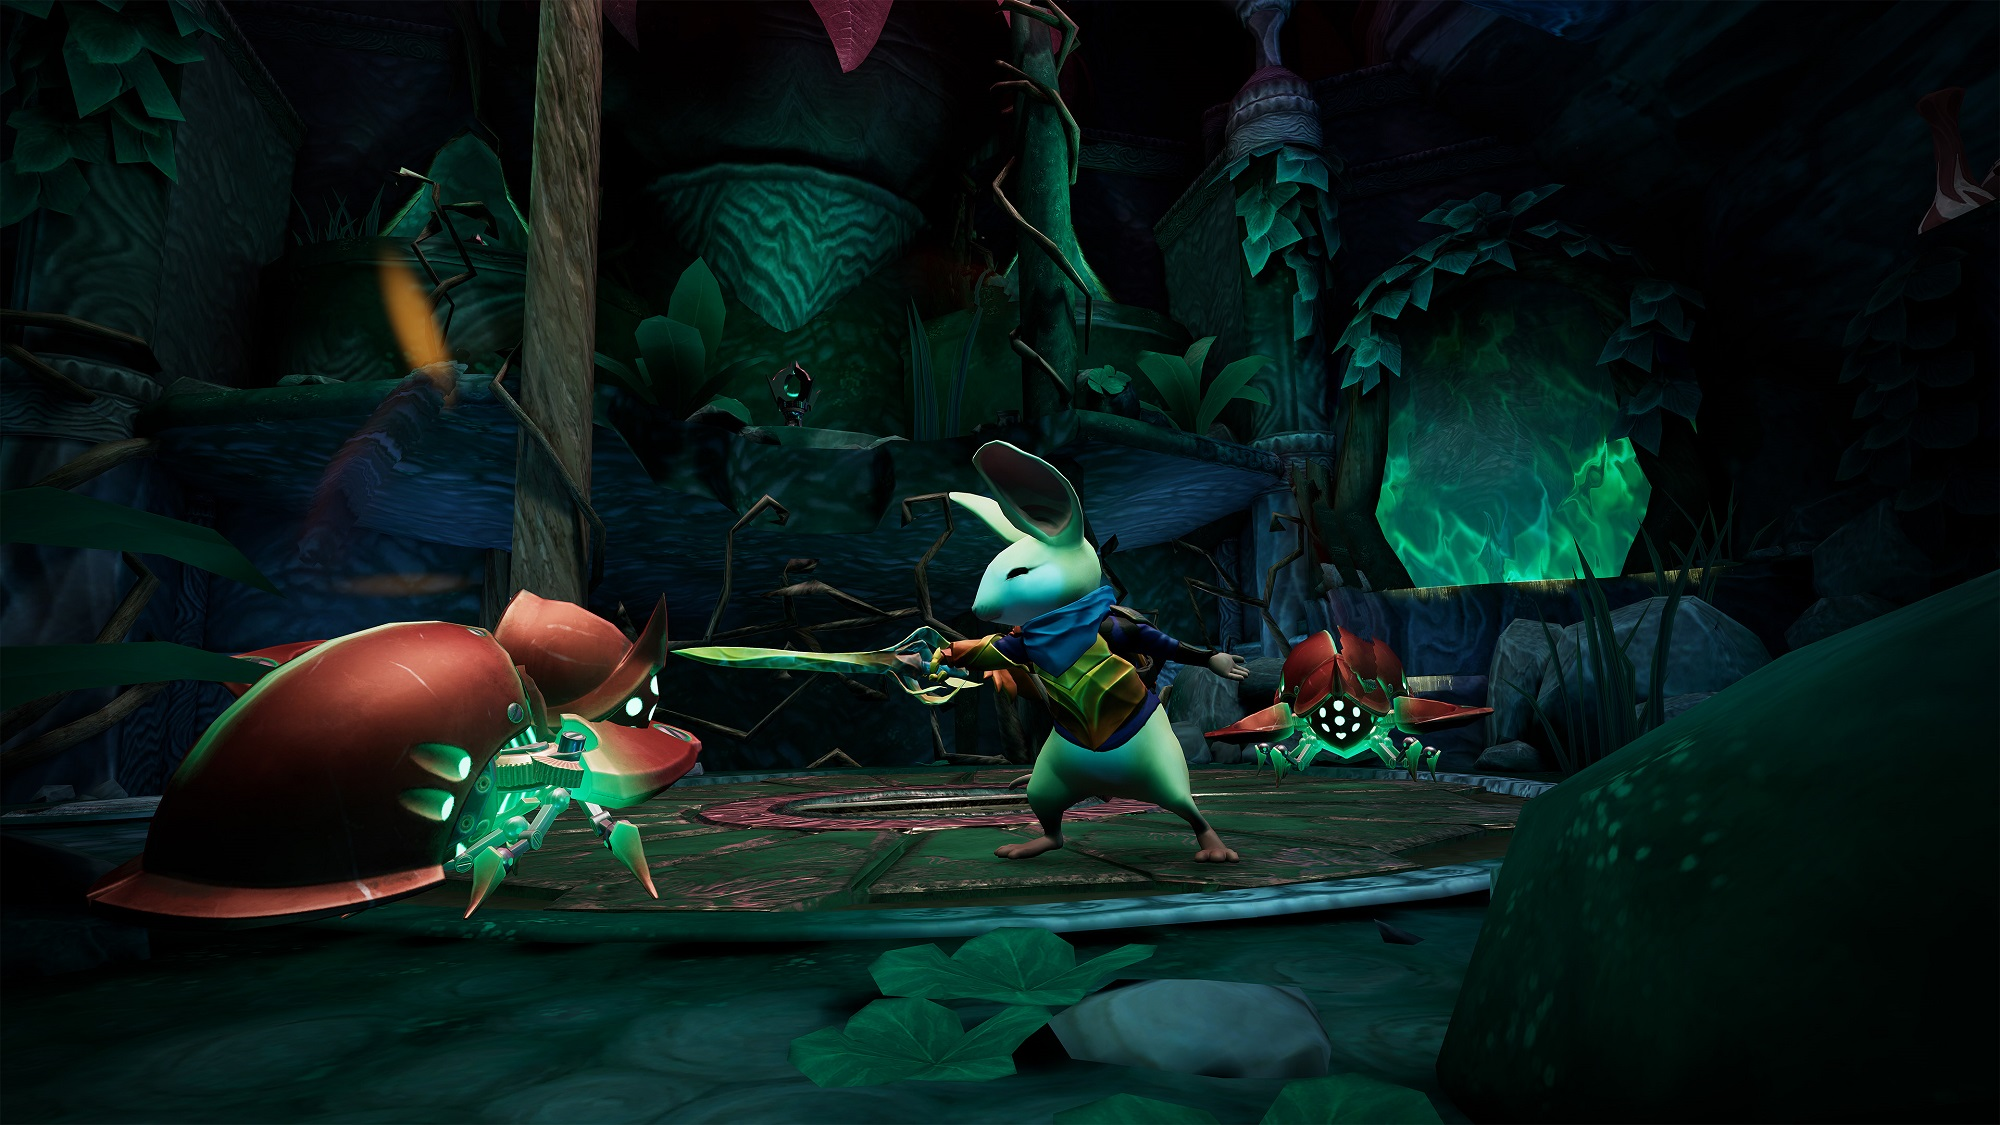 Adorable VR platformer Moss is getting new content that's coming to Oculus Quest first screenshot